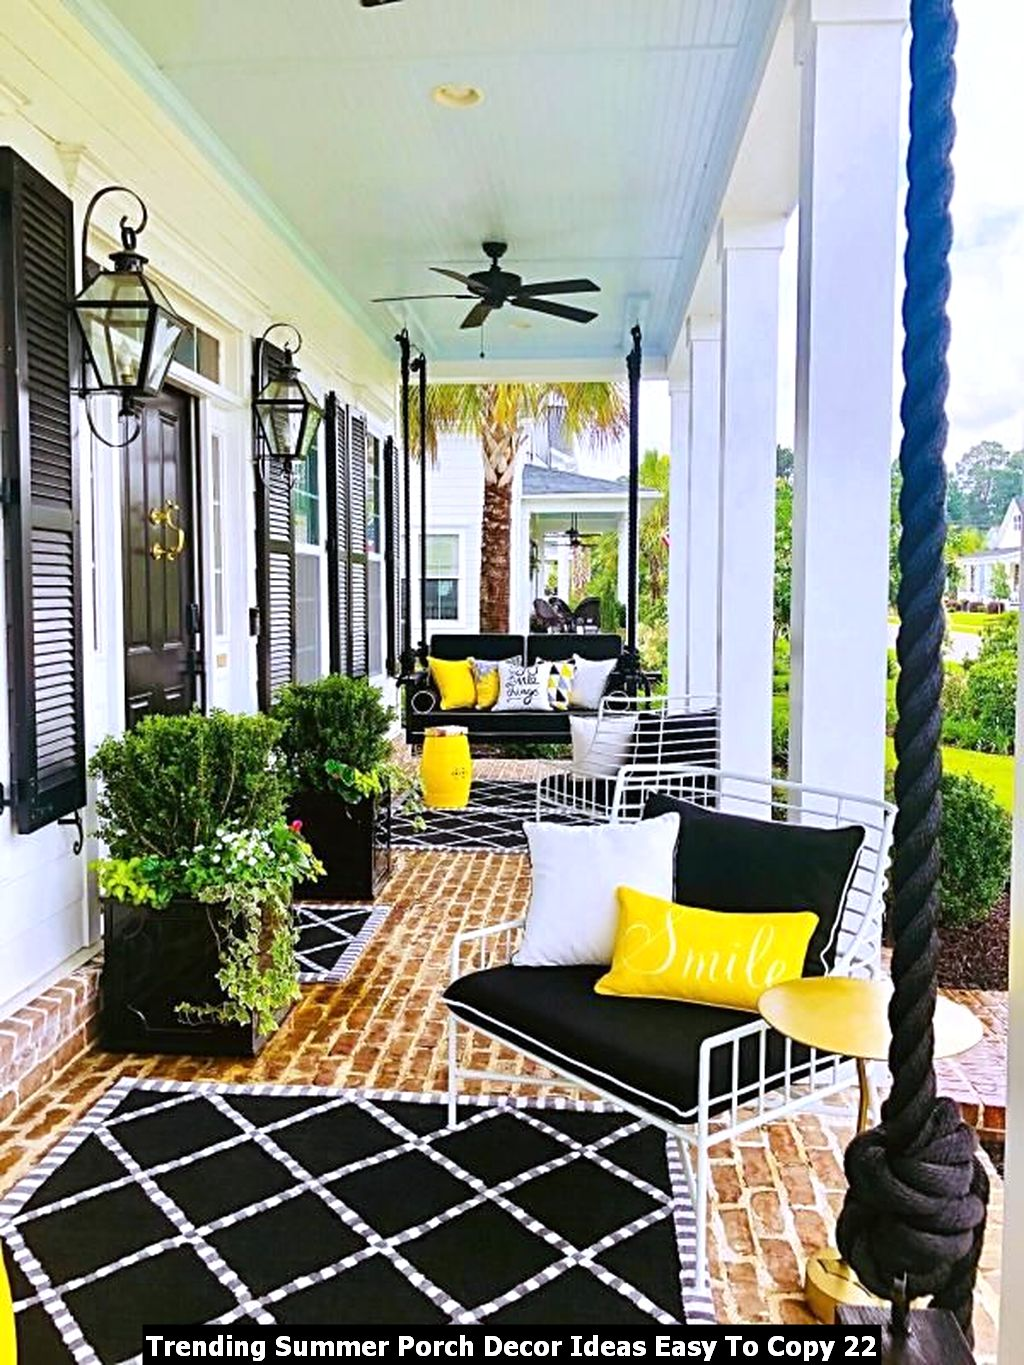 Trending Summer Porch Decor Ideas Easy To Copy 22